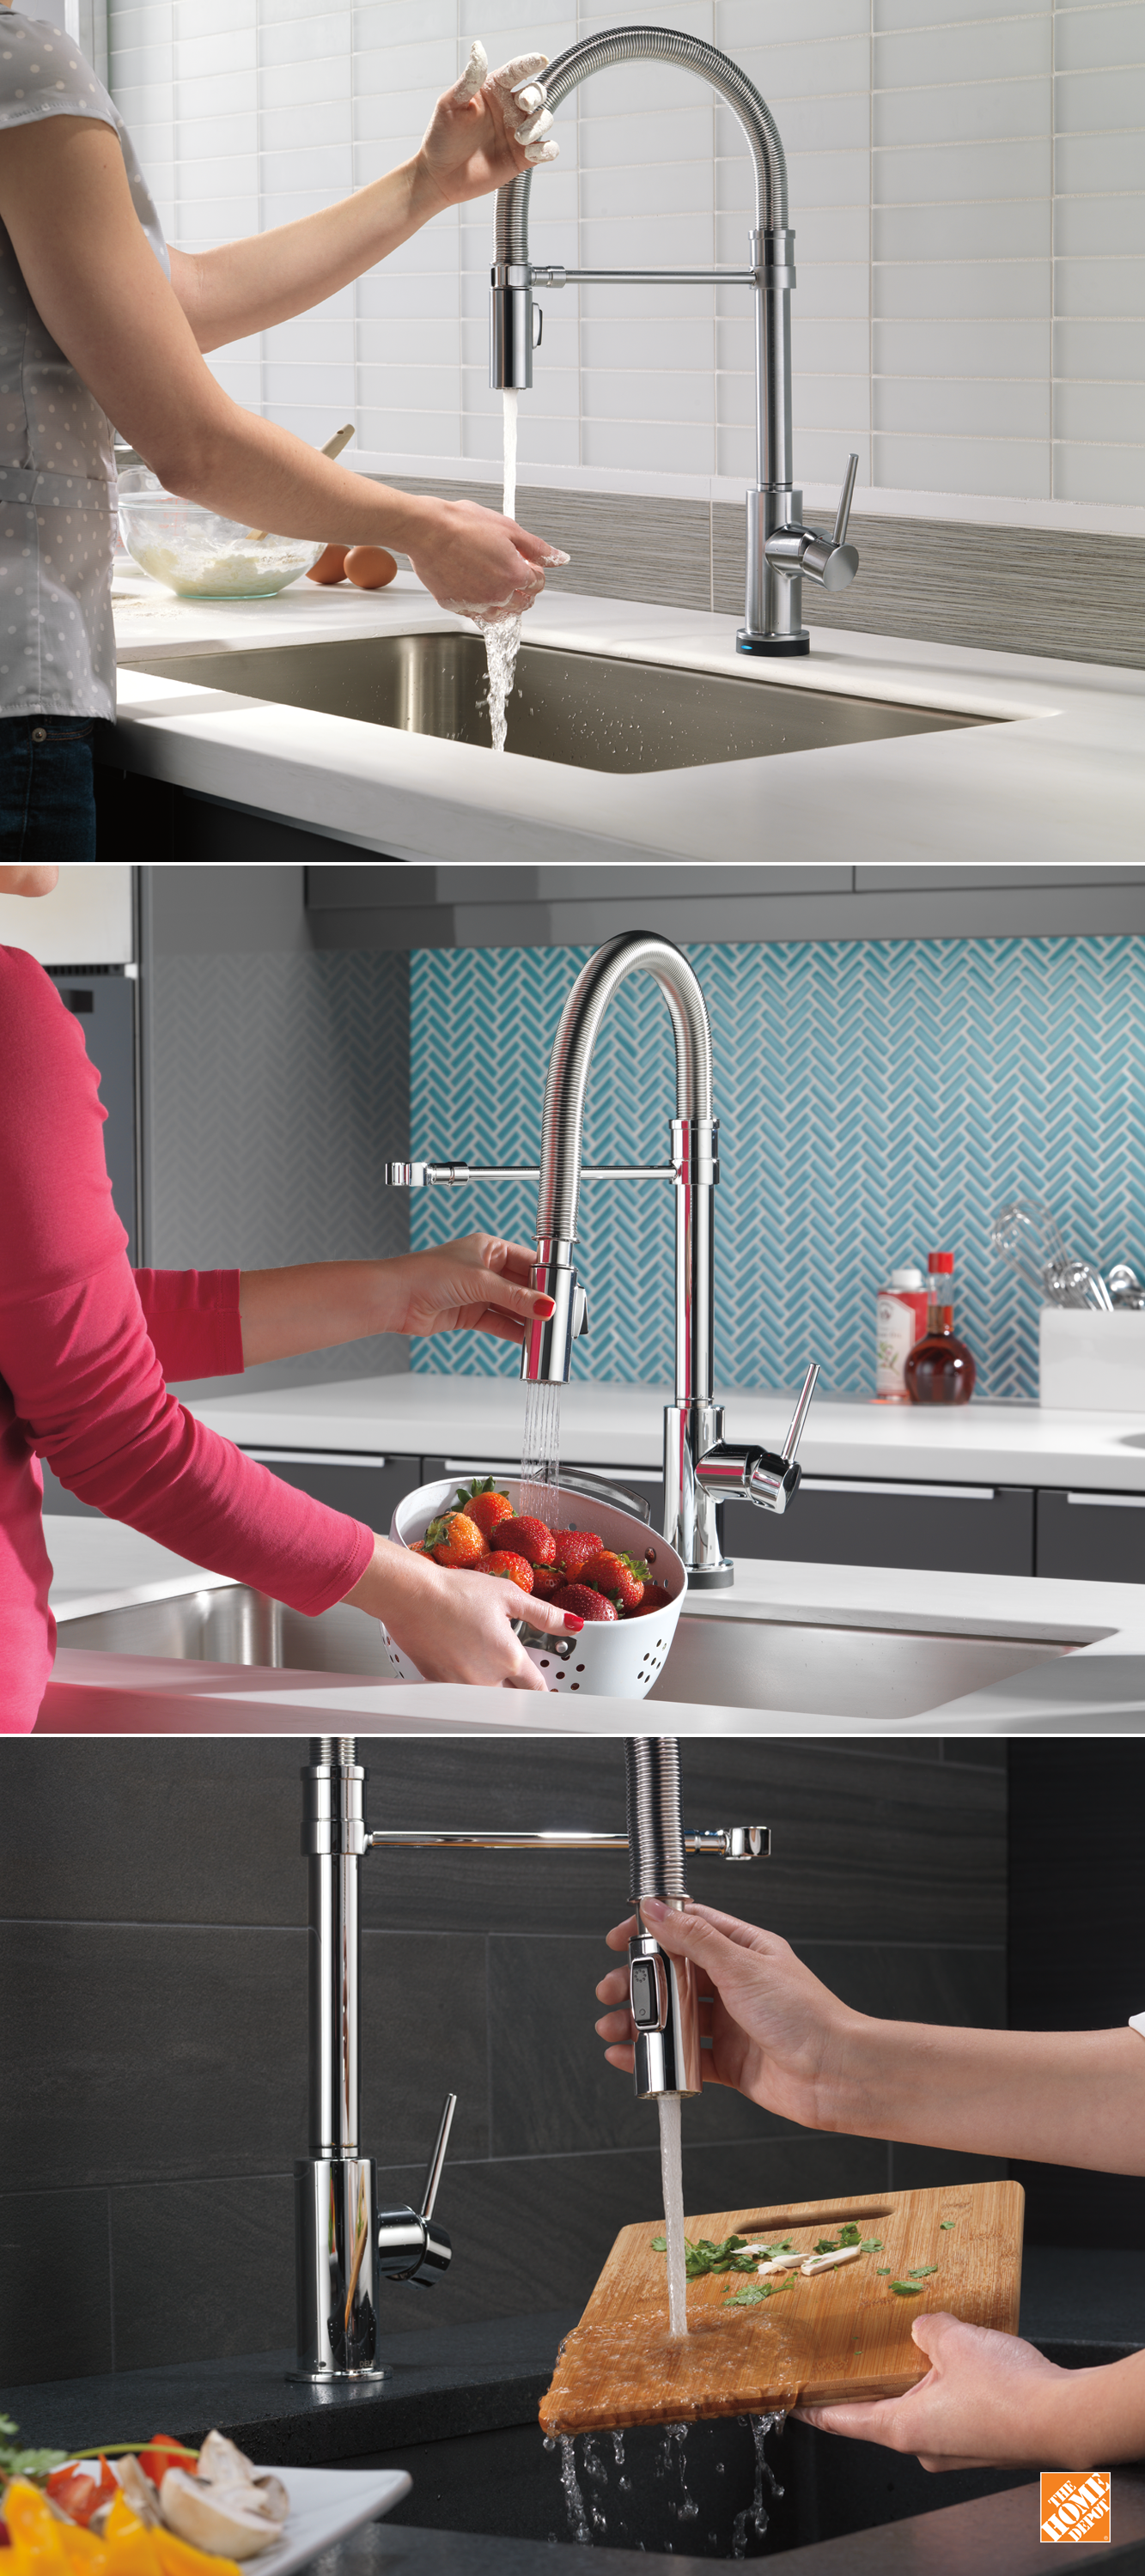 This sophisticated kitchen faucet makes cooking and cleaning easier ...